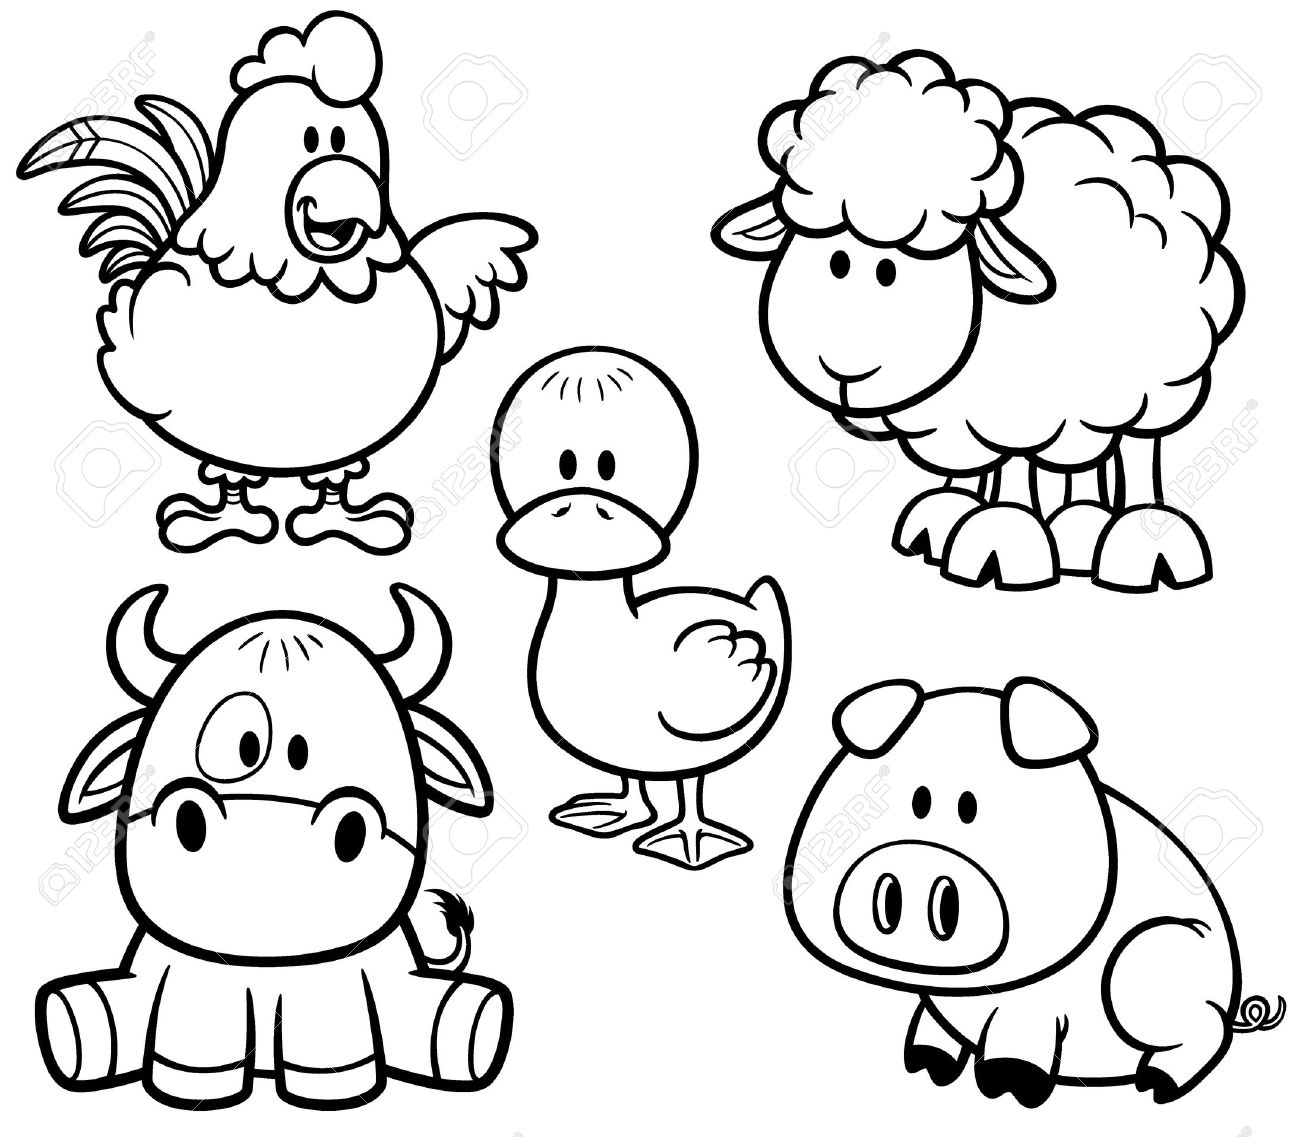 coloring pages cute baby animals cute baby animal coloring clipart panda free clipart pages baby animals cute coloring